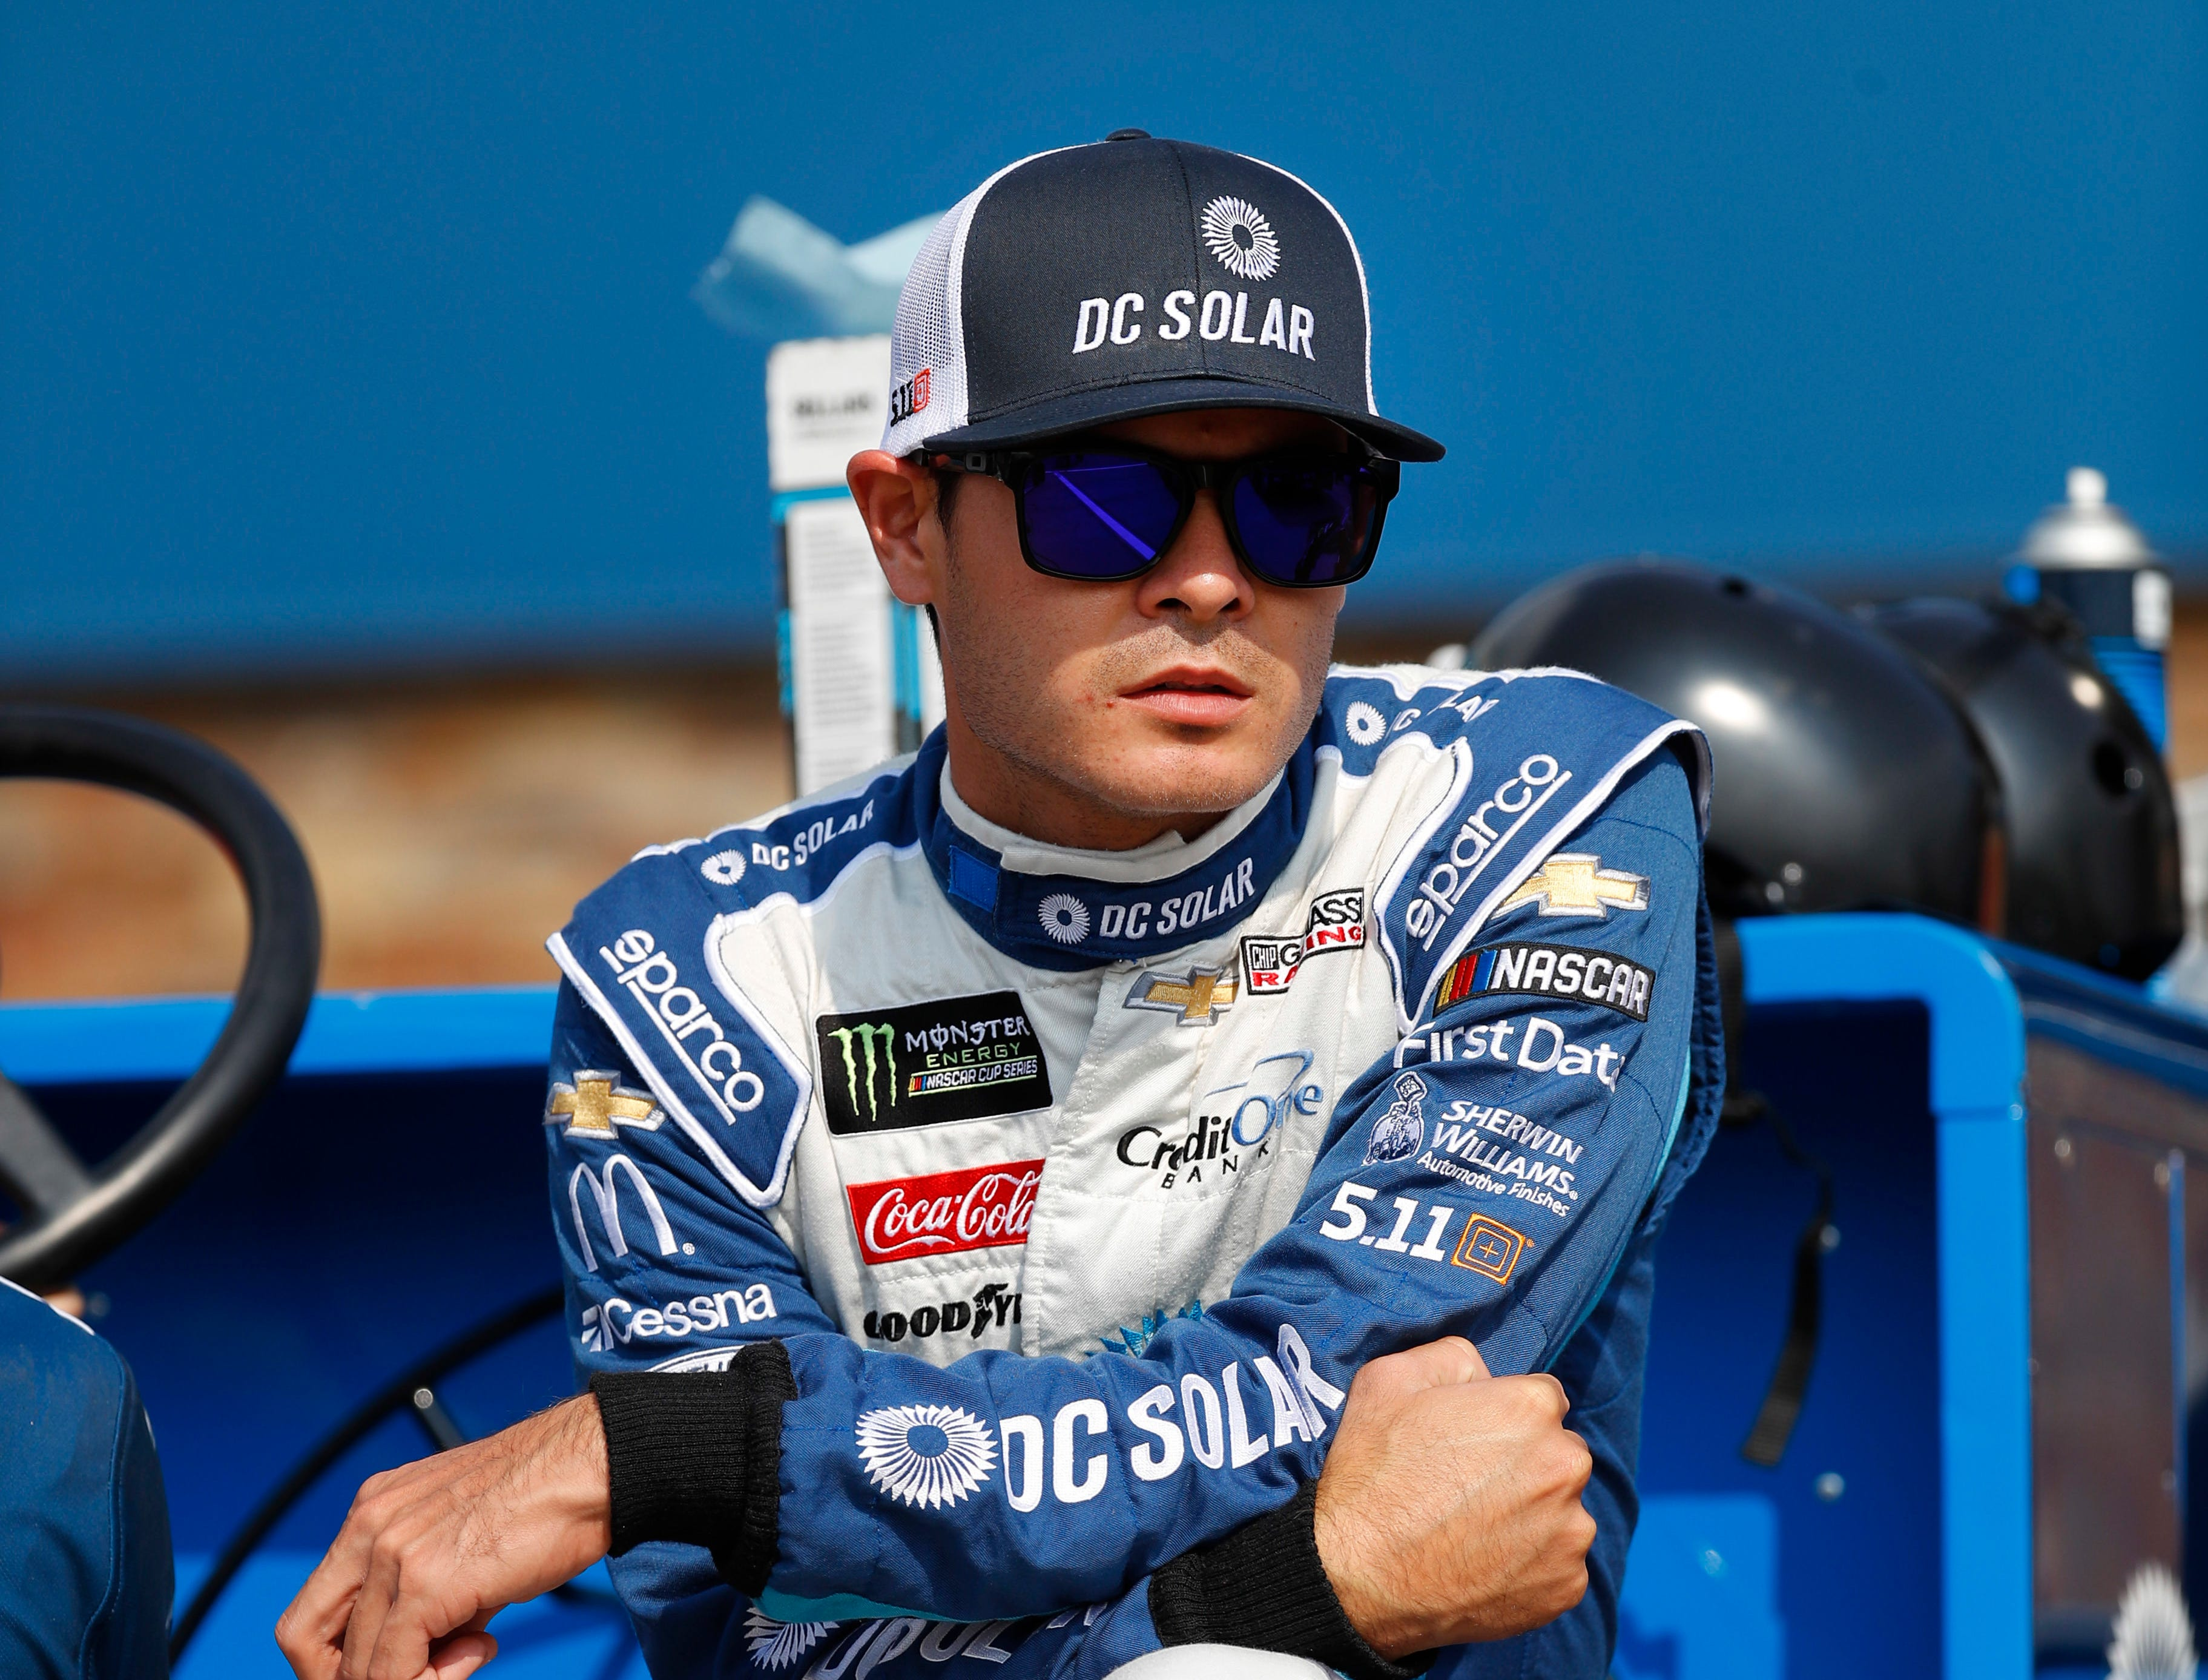 Kyle Larson watches before qualifications for a NASCAR Cup Series auto race at Michigan International Speedway in Brooklyn, Mich., Friday, Aug. 10, 2018.